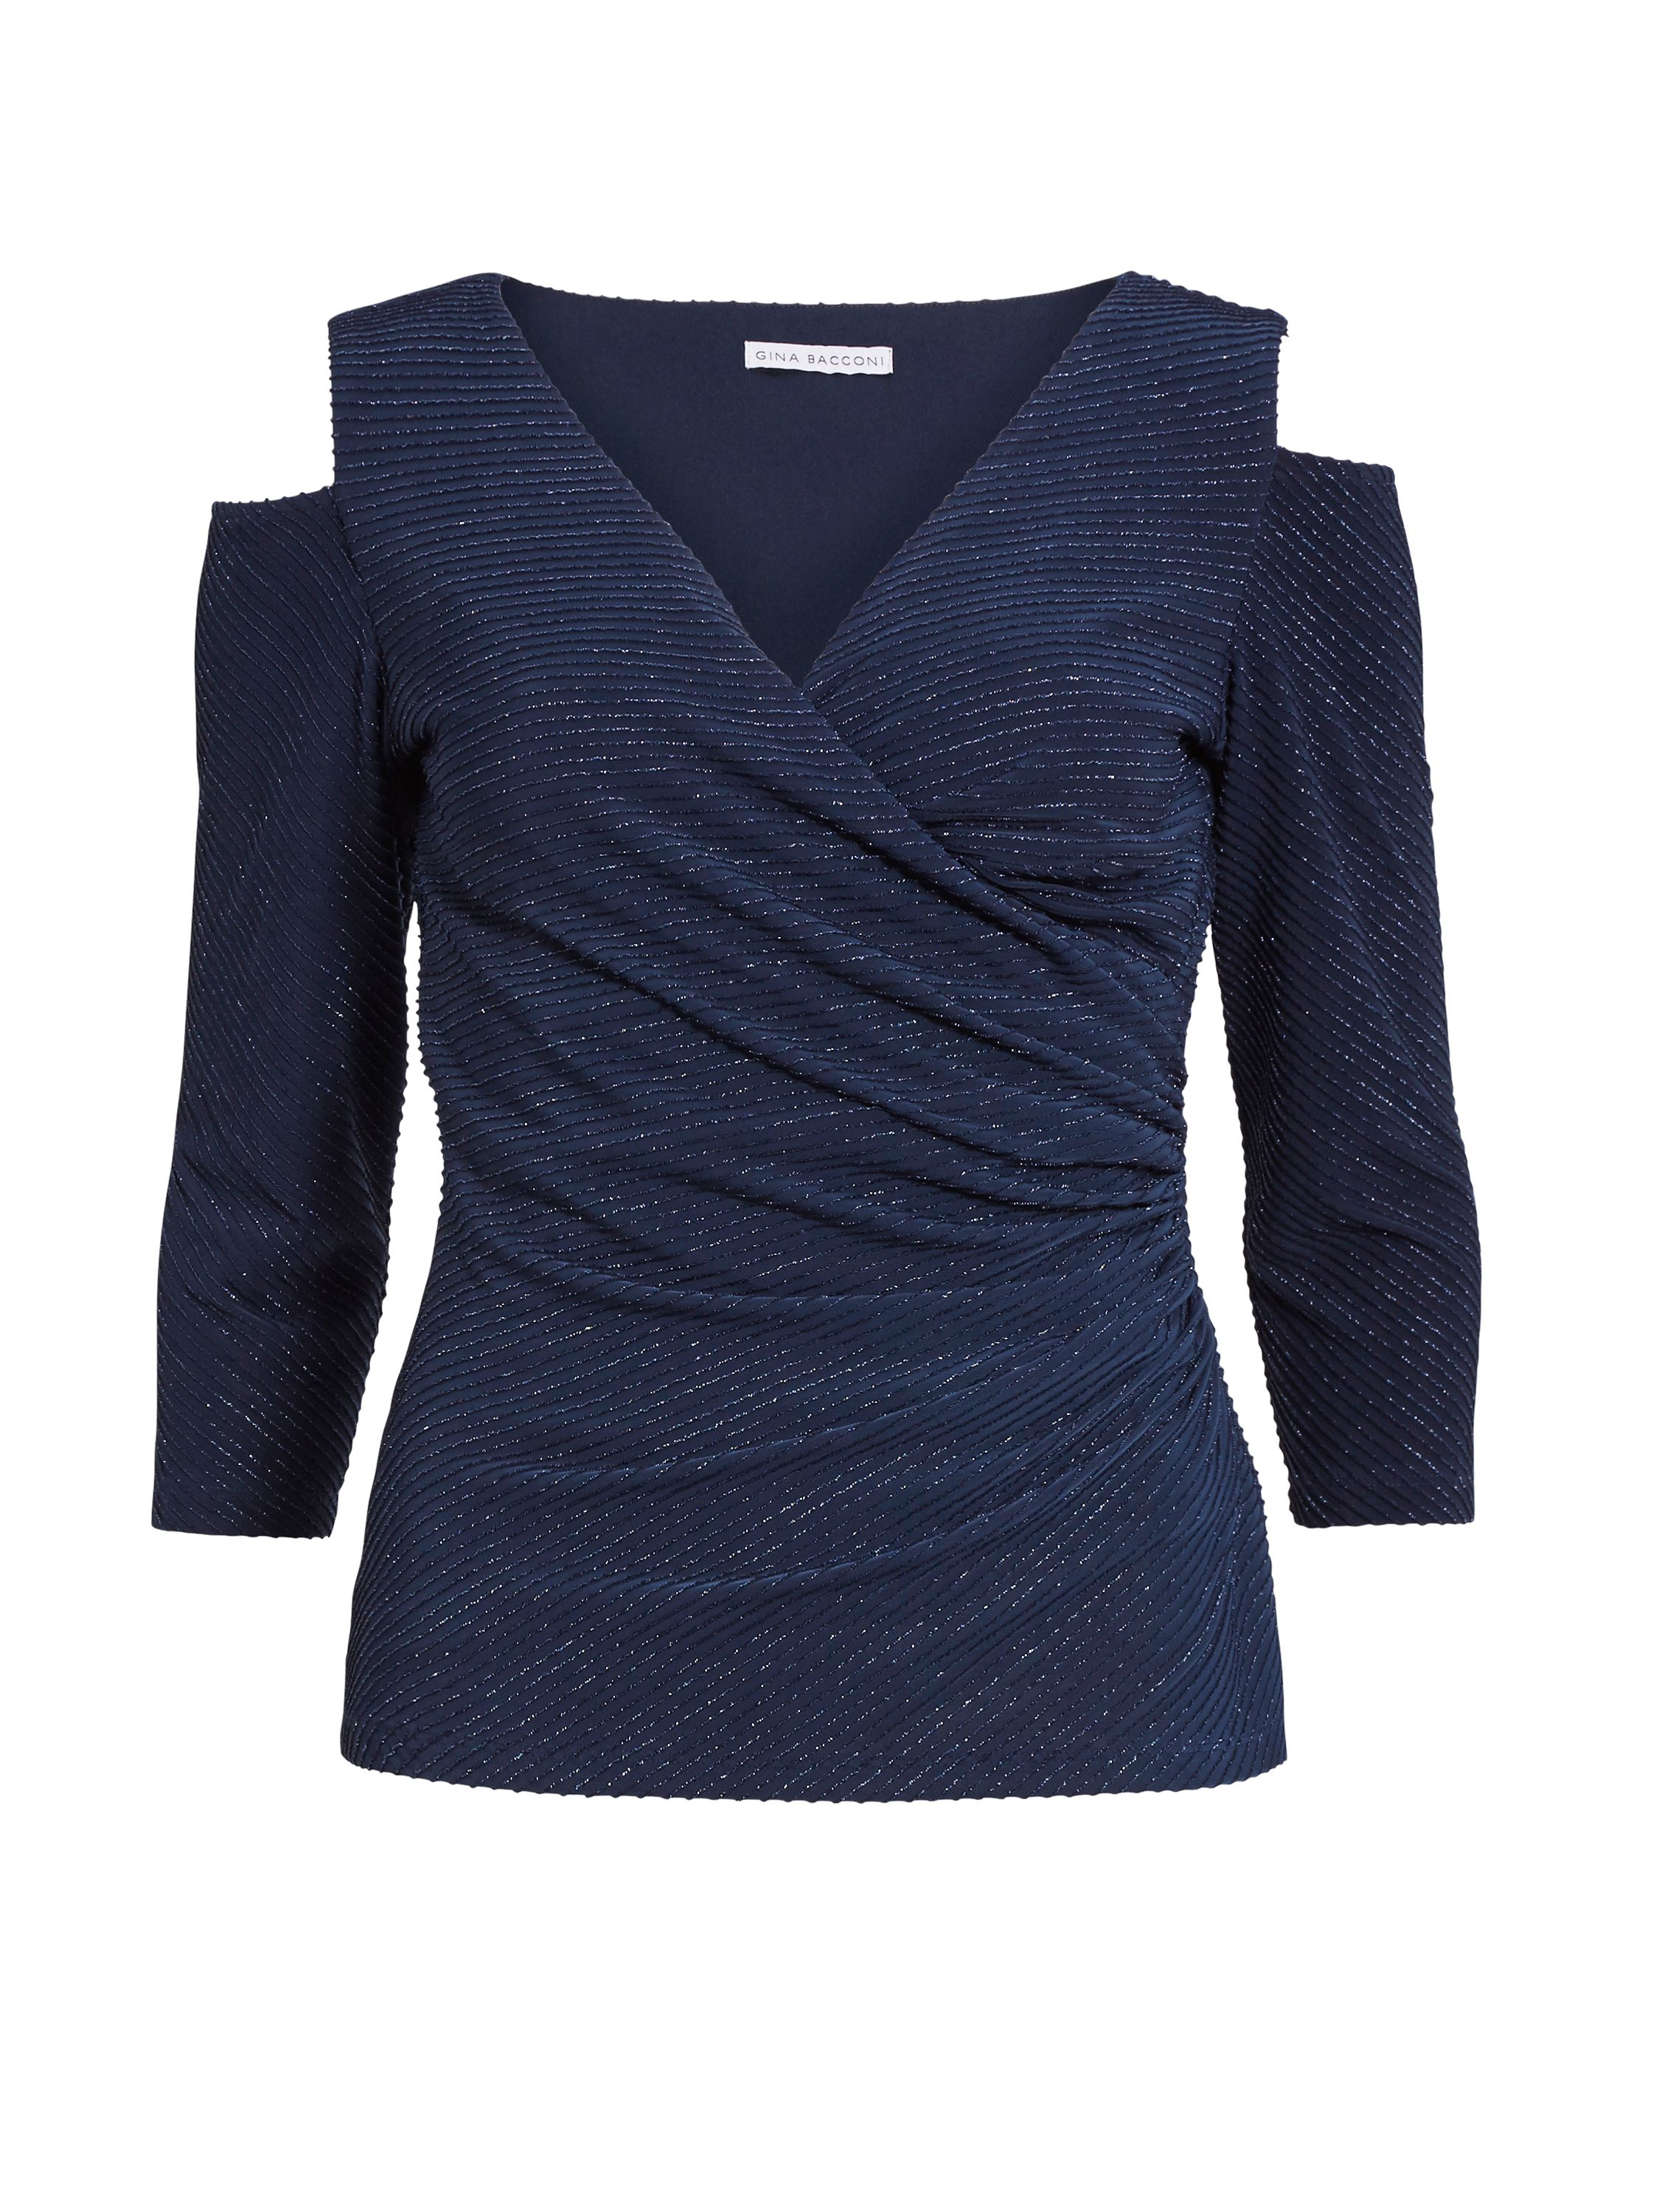 Gina Bacconi 3D Metallic Stripe Knit Top, Blue